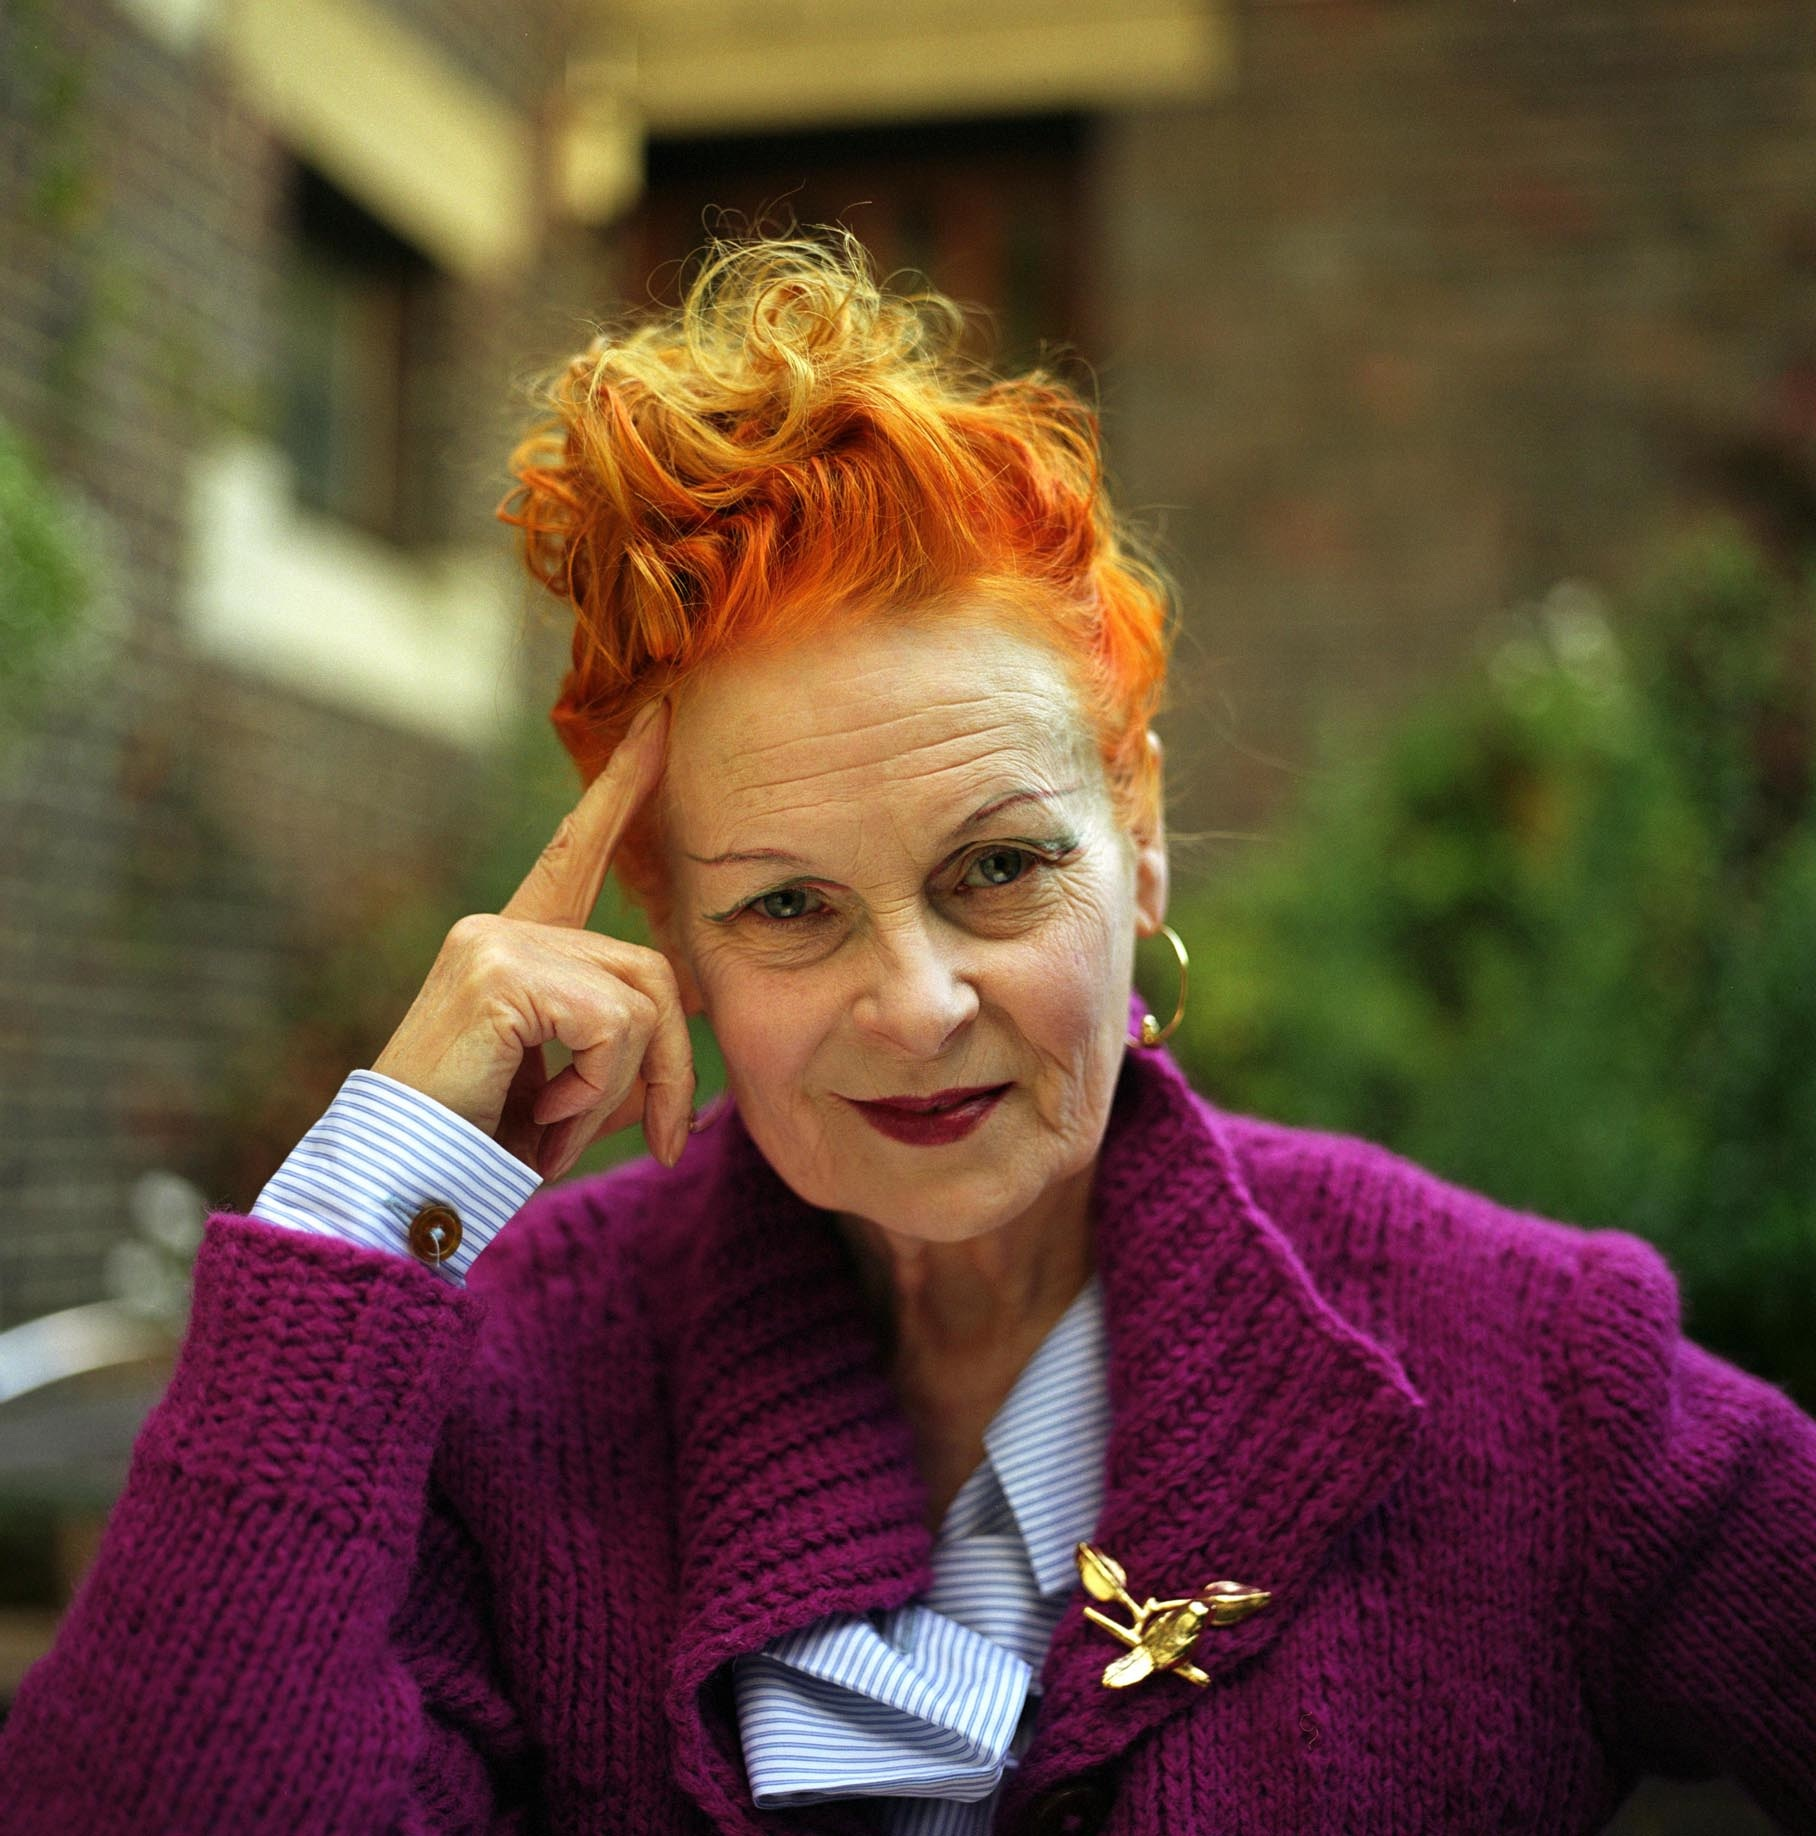 Vivienne Westwood Shares Her Tip For Reducing Food